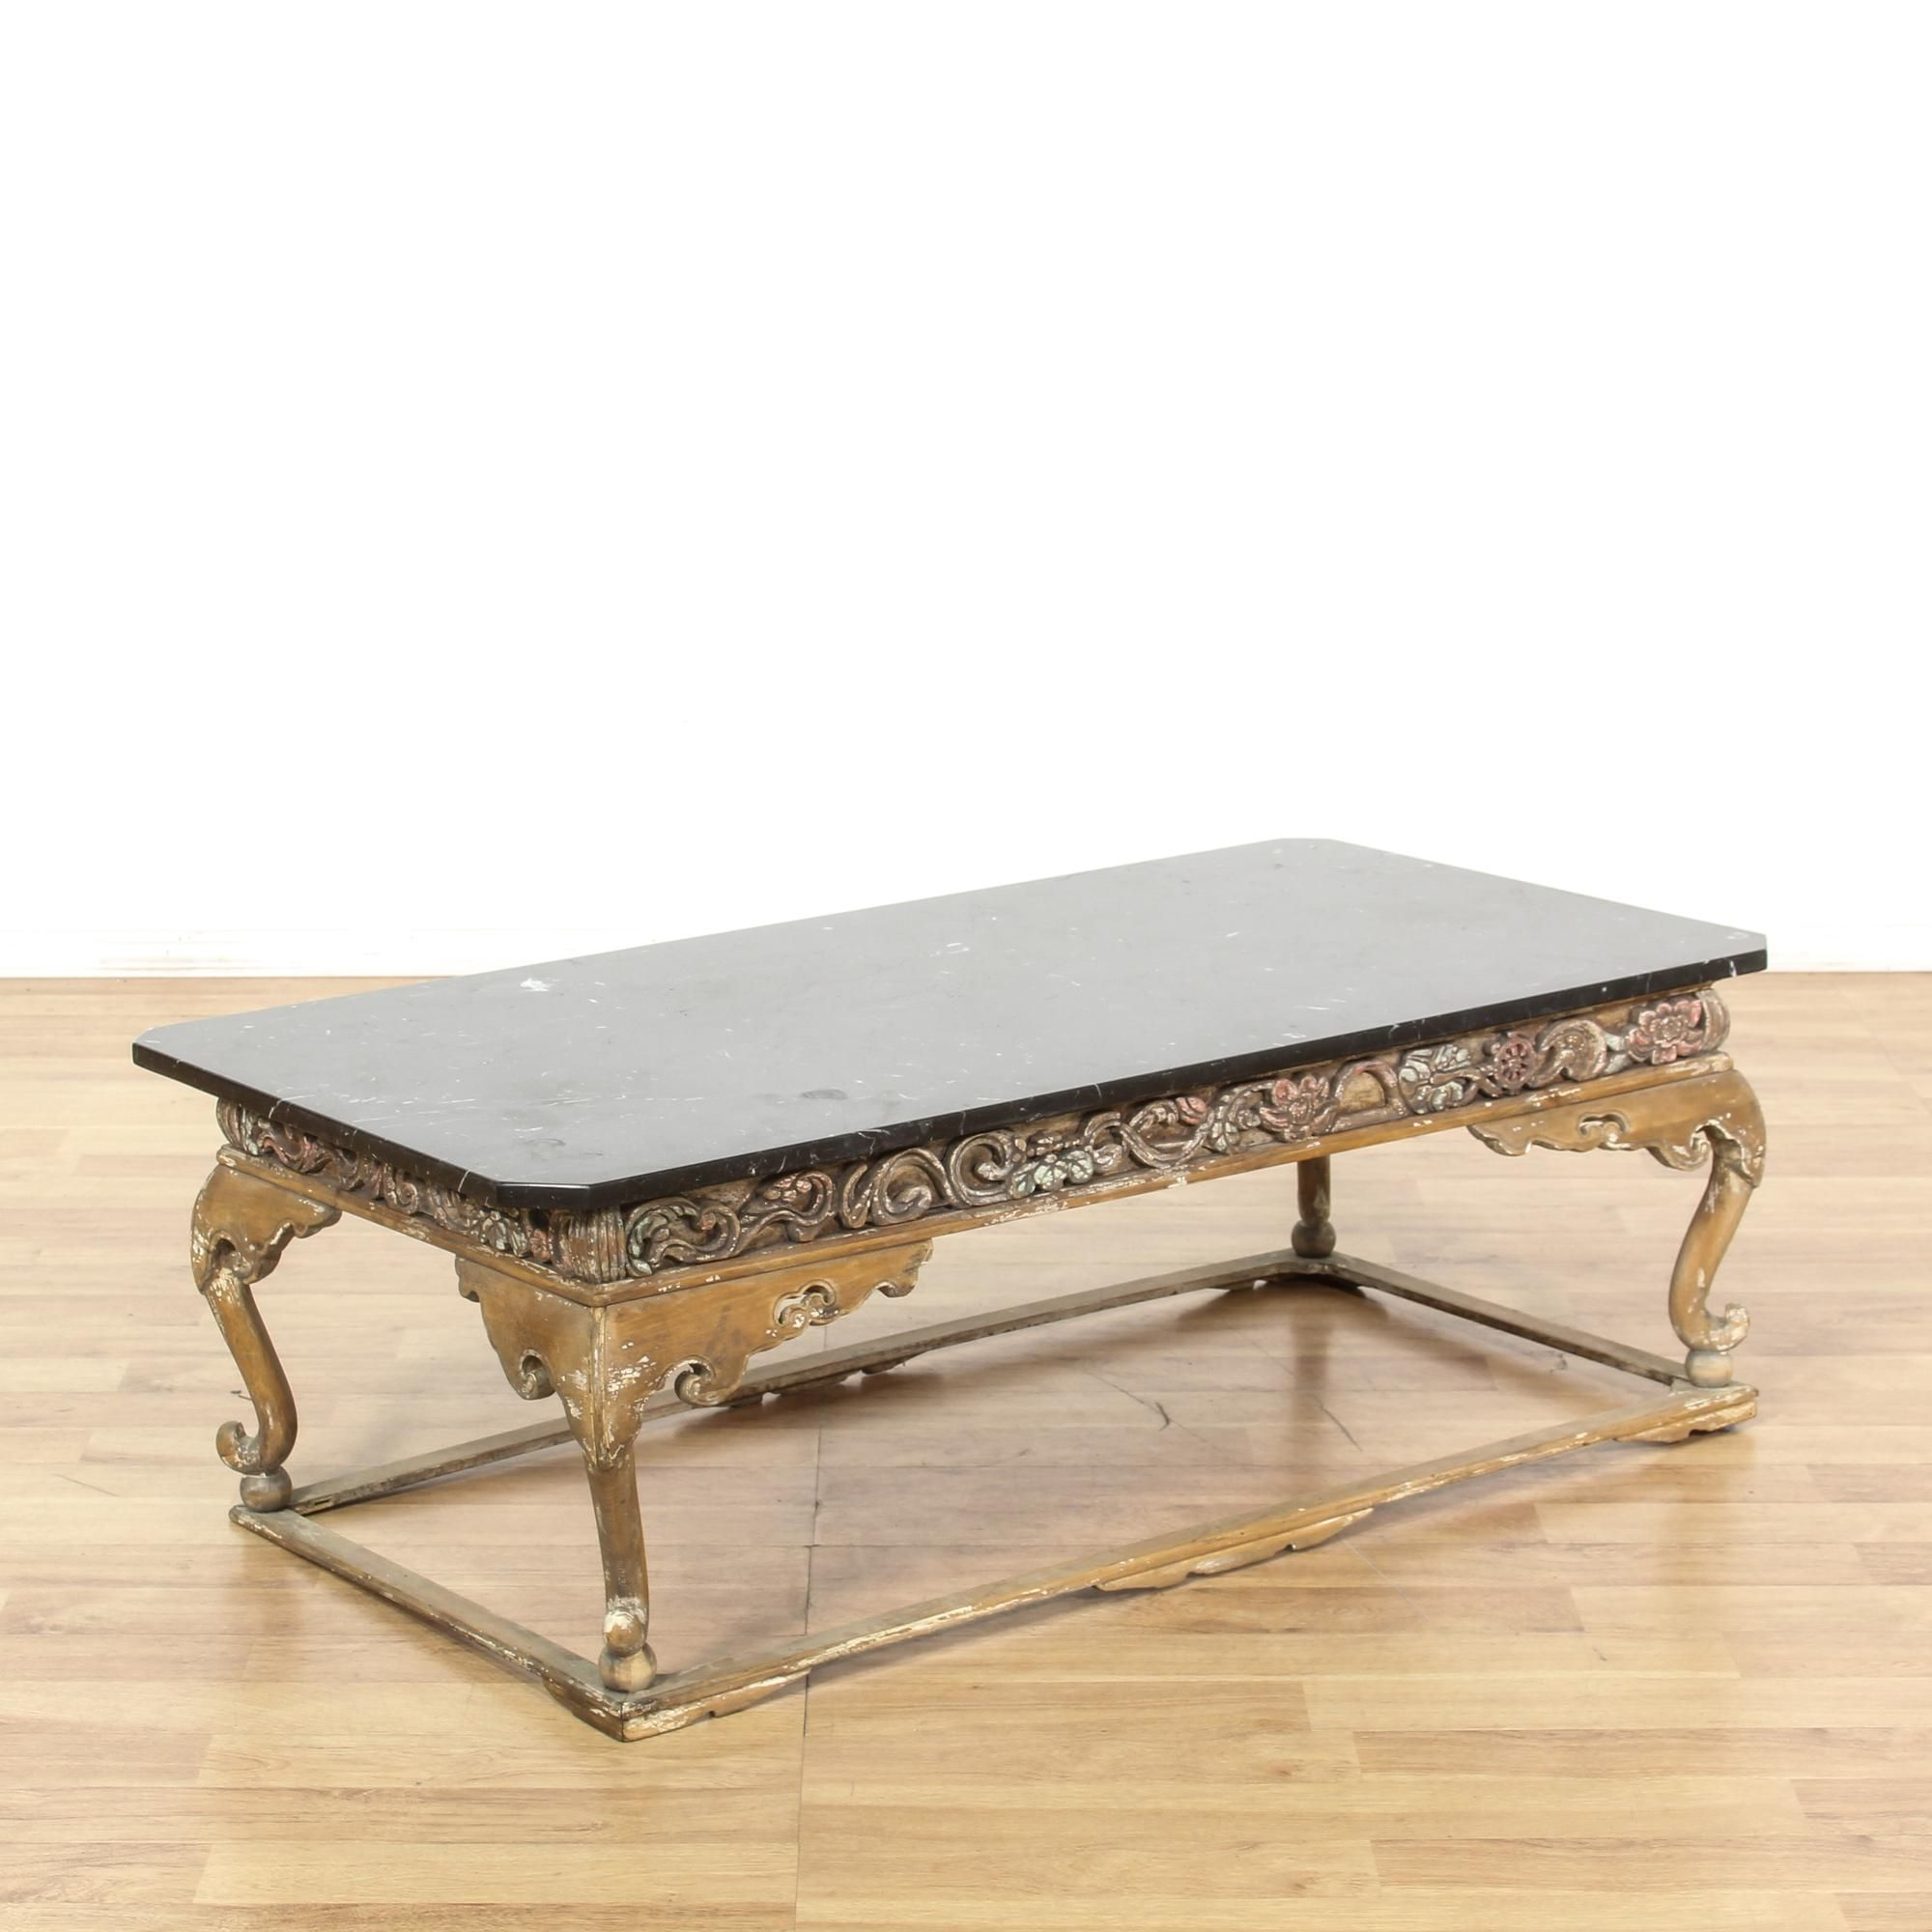 This Chinese coffee table is featured in a solid wood with ...